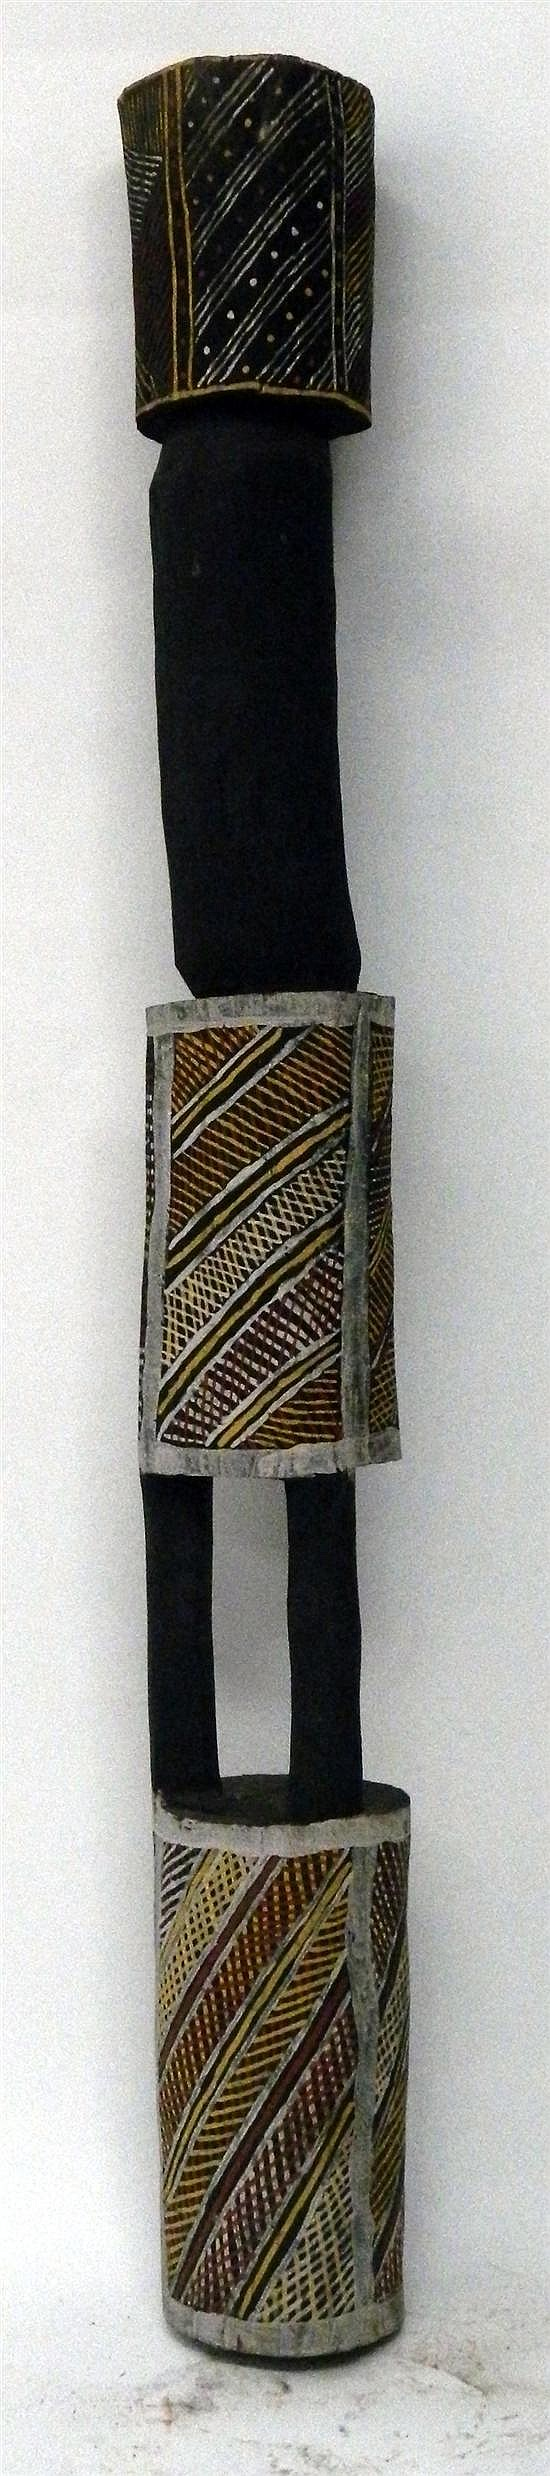 Artist Unknown Tiwi Islands Pukami Pole 2002 Earth pigment on Iron Wood